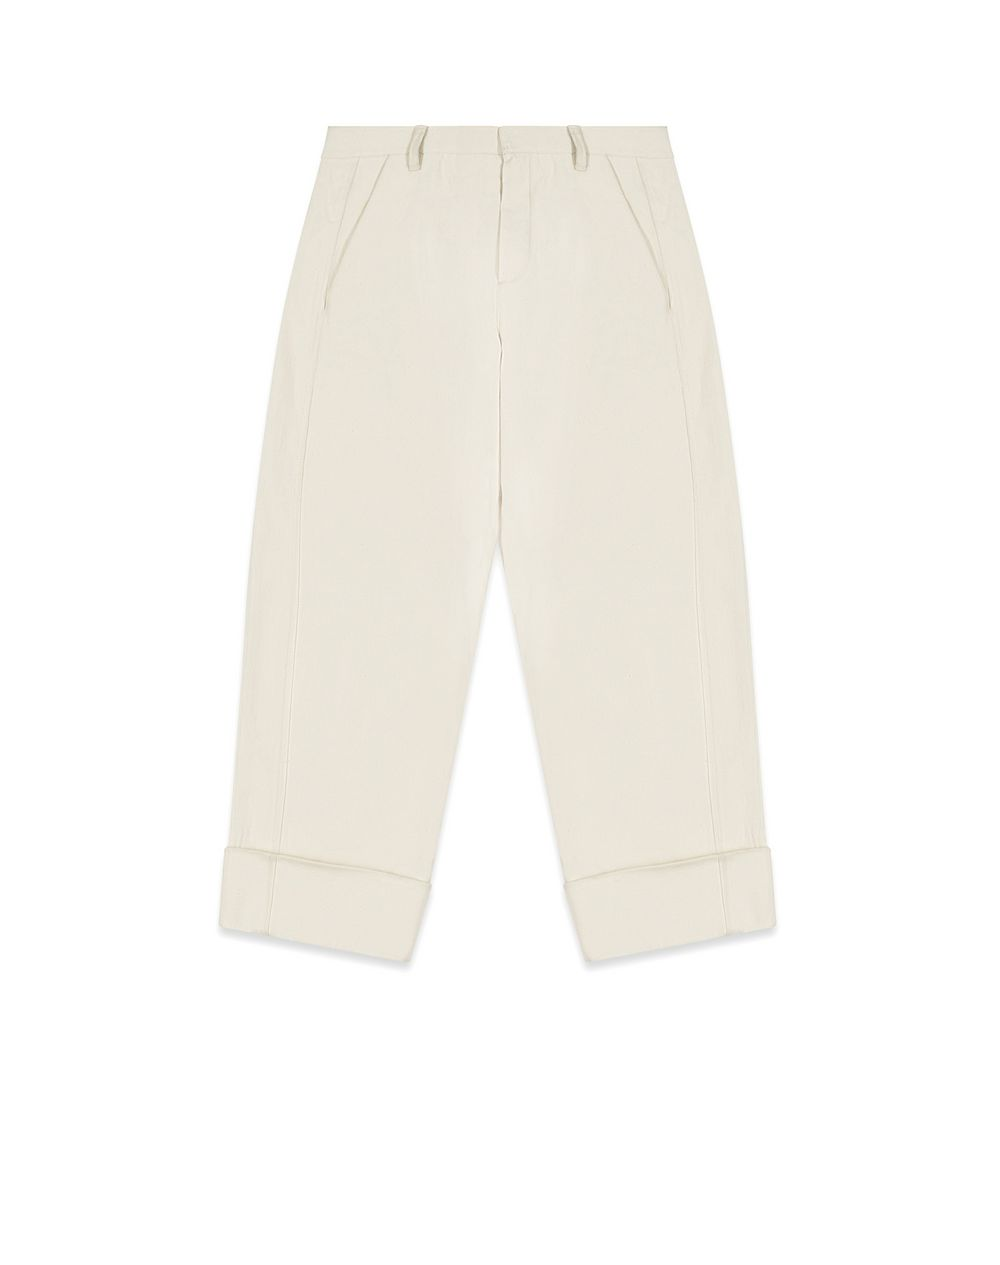 TAILORED COTTON TROUSERS - Lanvin